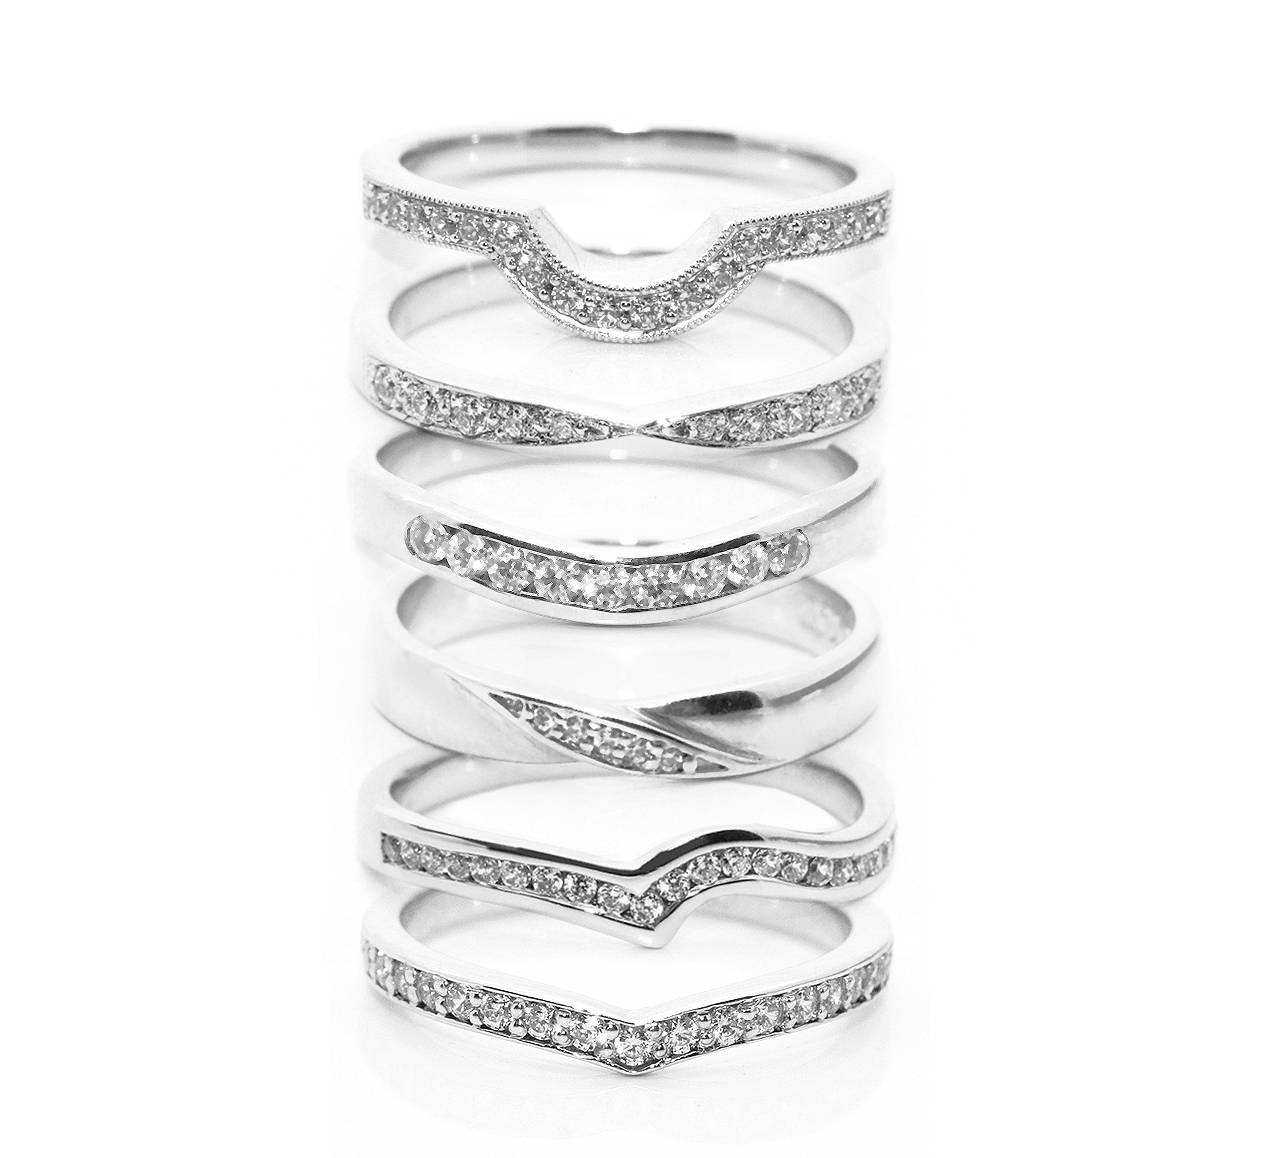 Fitting Inspiration For Shaped Wedding Rings Regarding Curved Wedding Bands To Fit Engagement Ring (View 3 of 15)